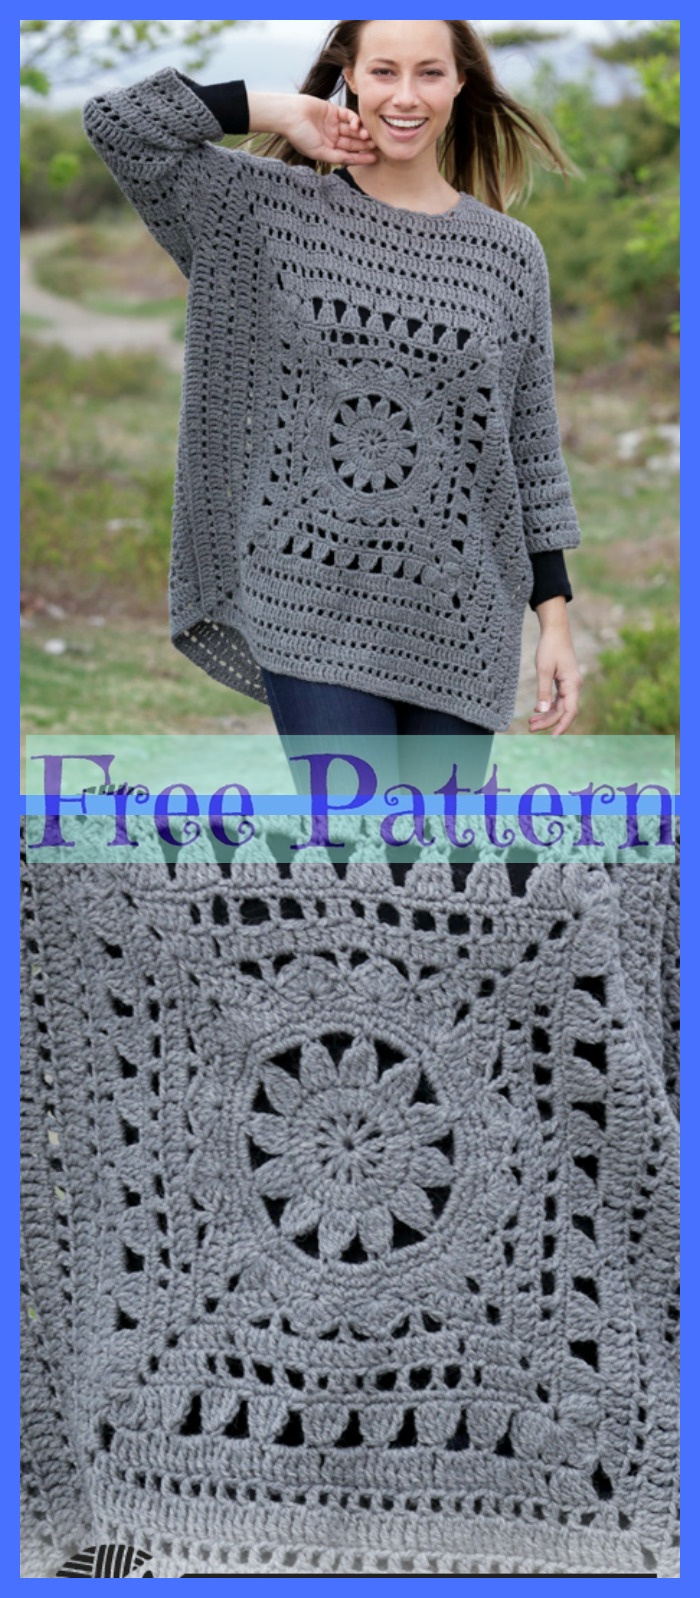 diy4ever-Pretty Crochet Sweaters - Free Patterns P5